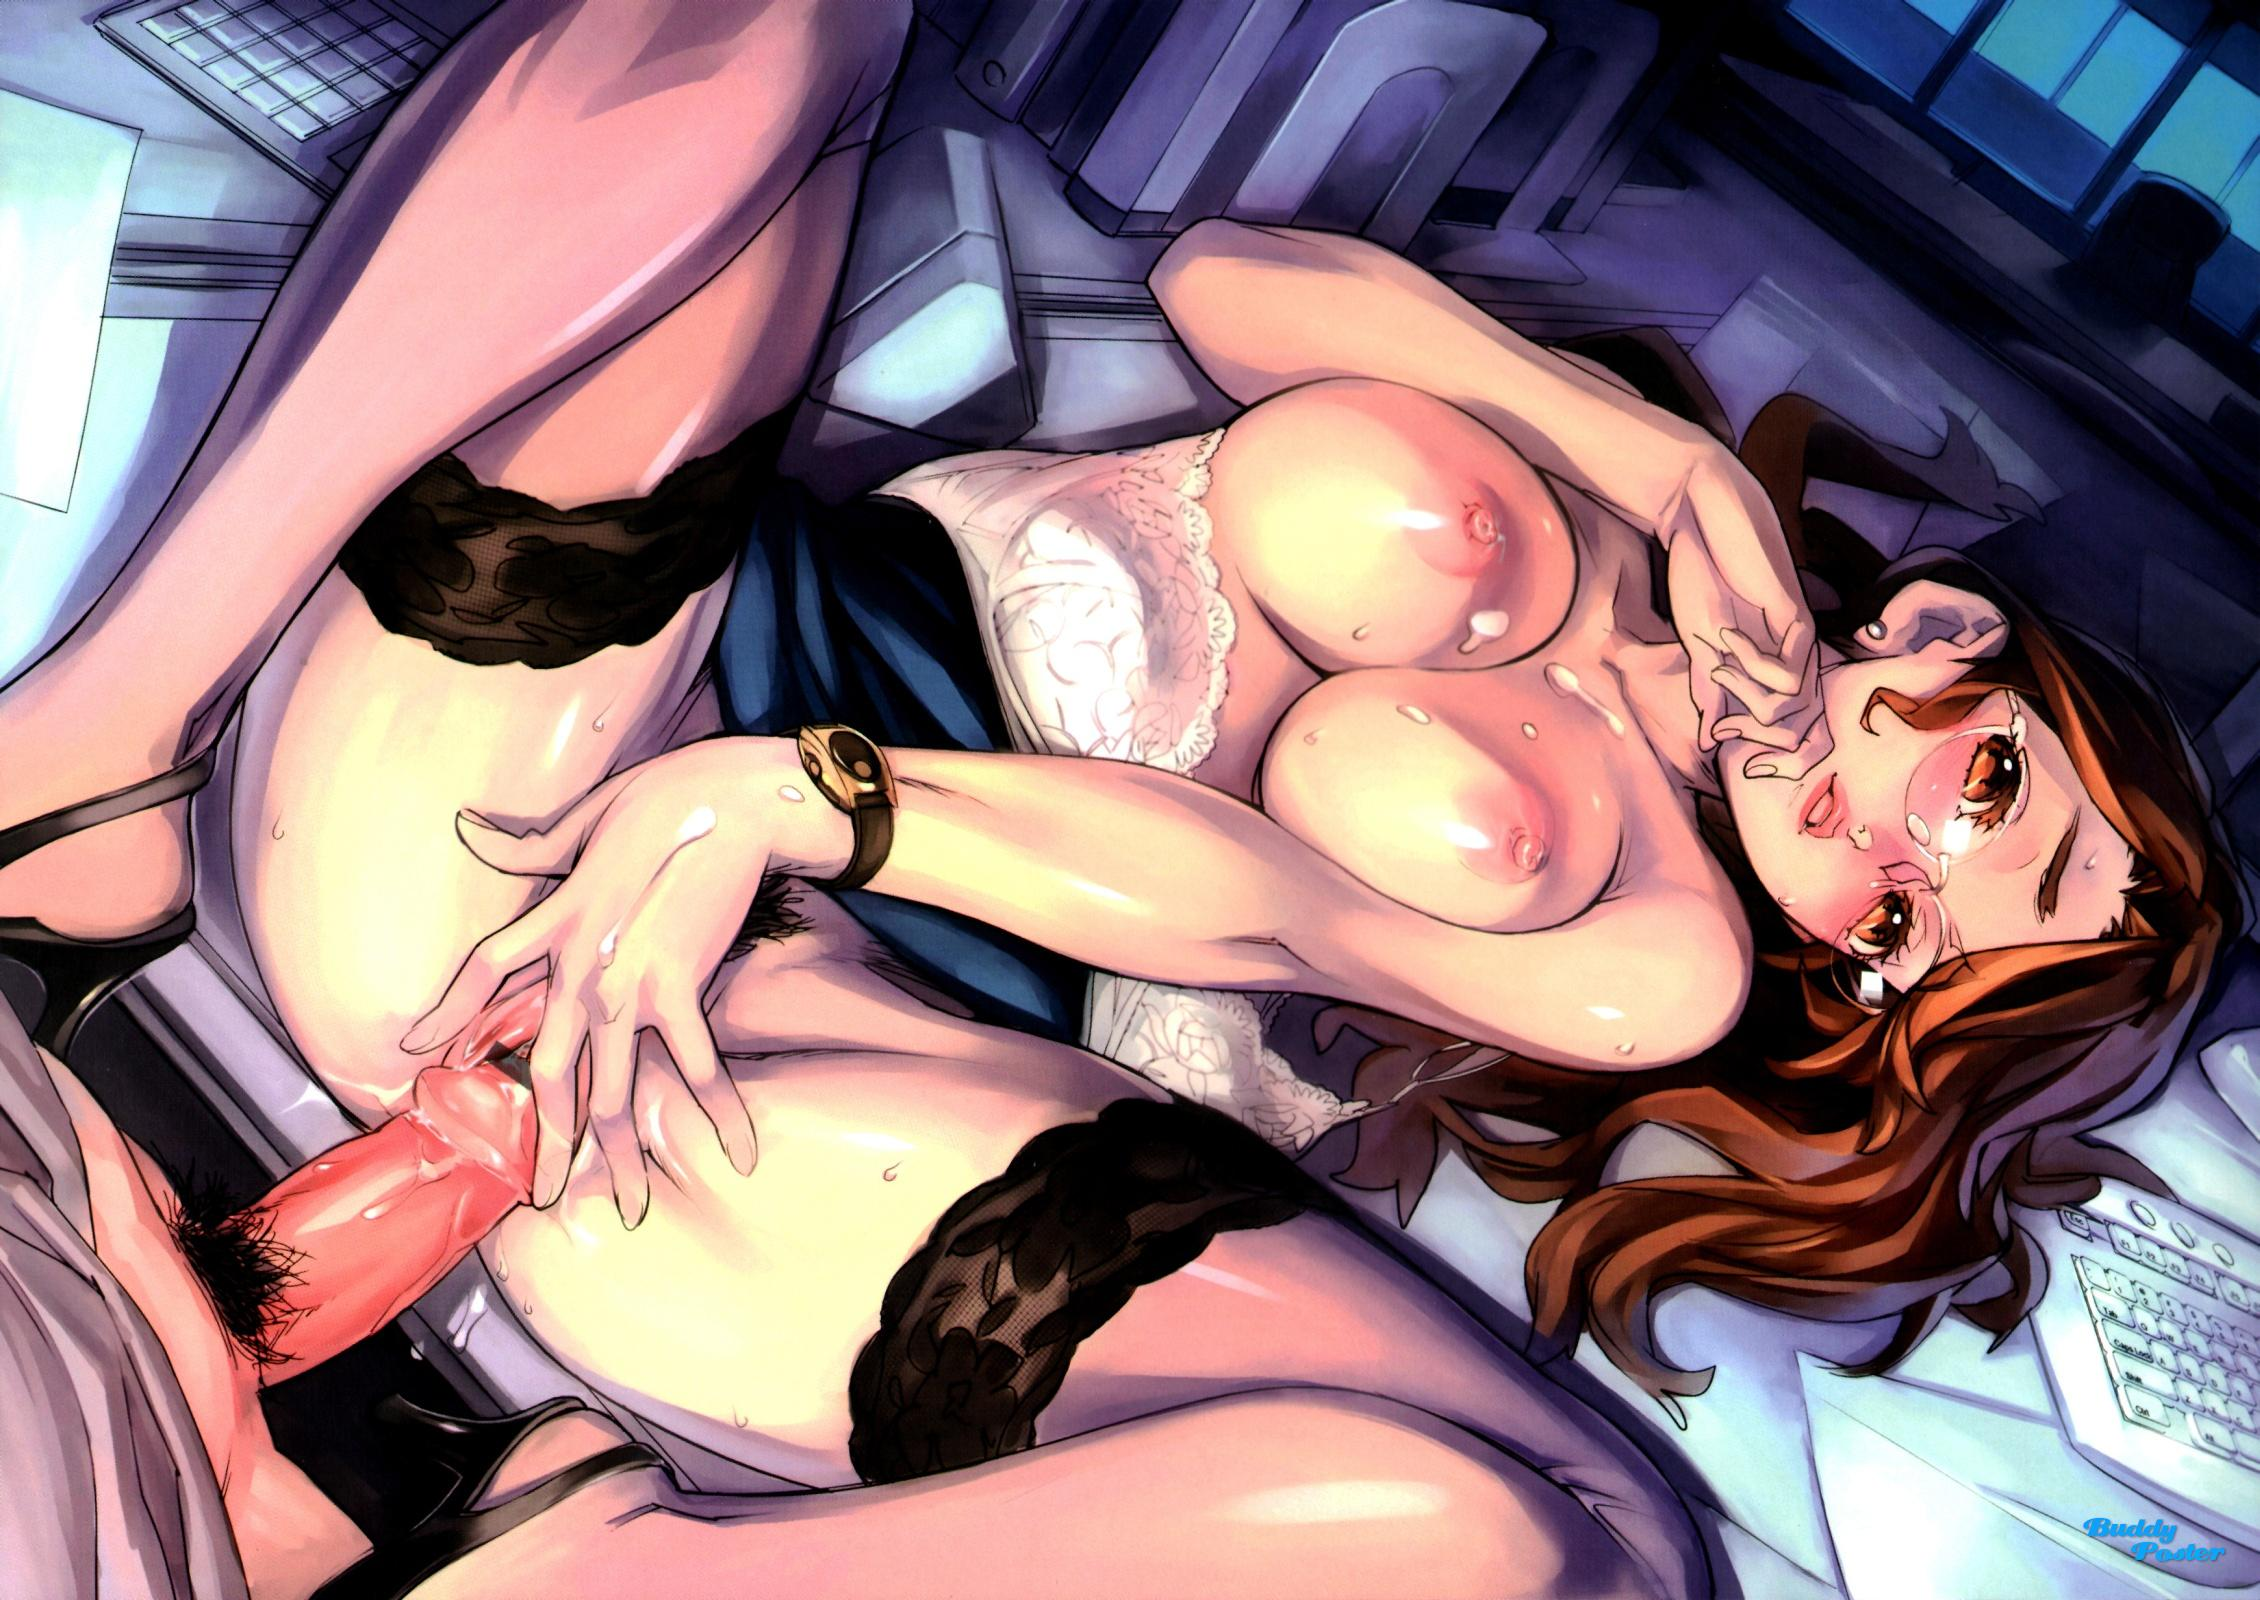 Secretary hentai sex adult movie